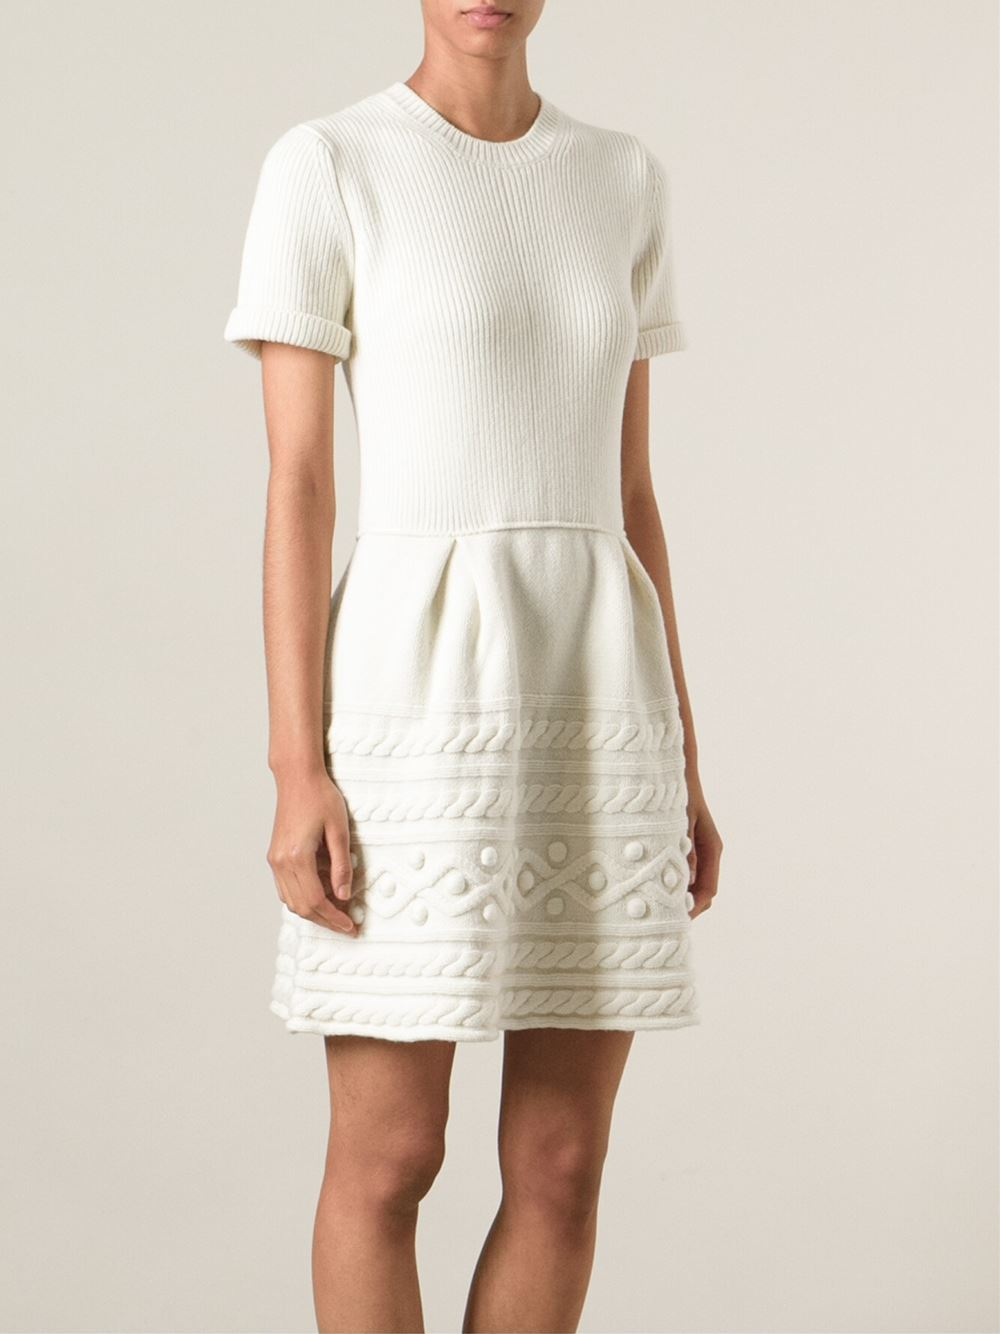 Red valentino Patterned Knit Dress in White | Lyst